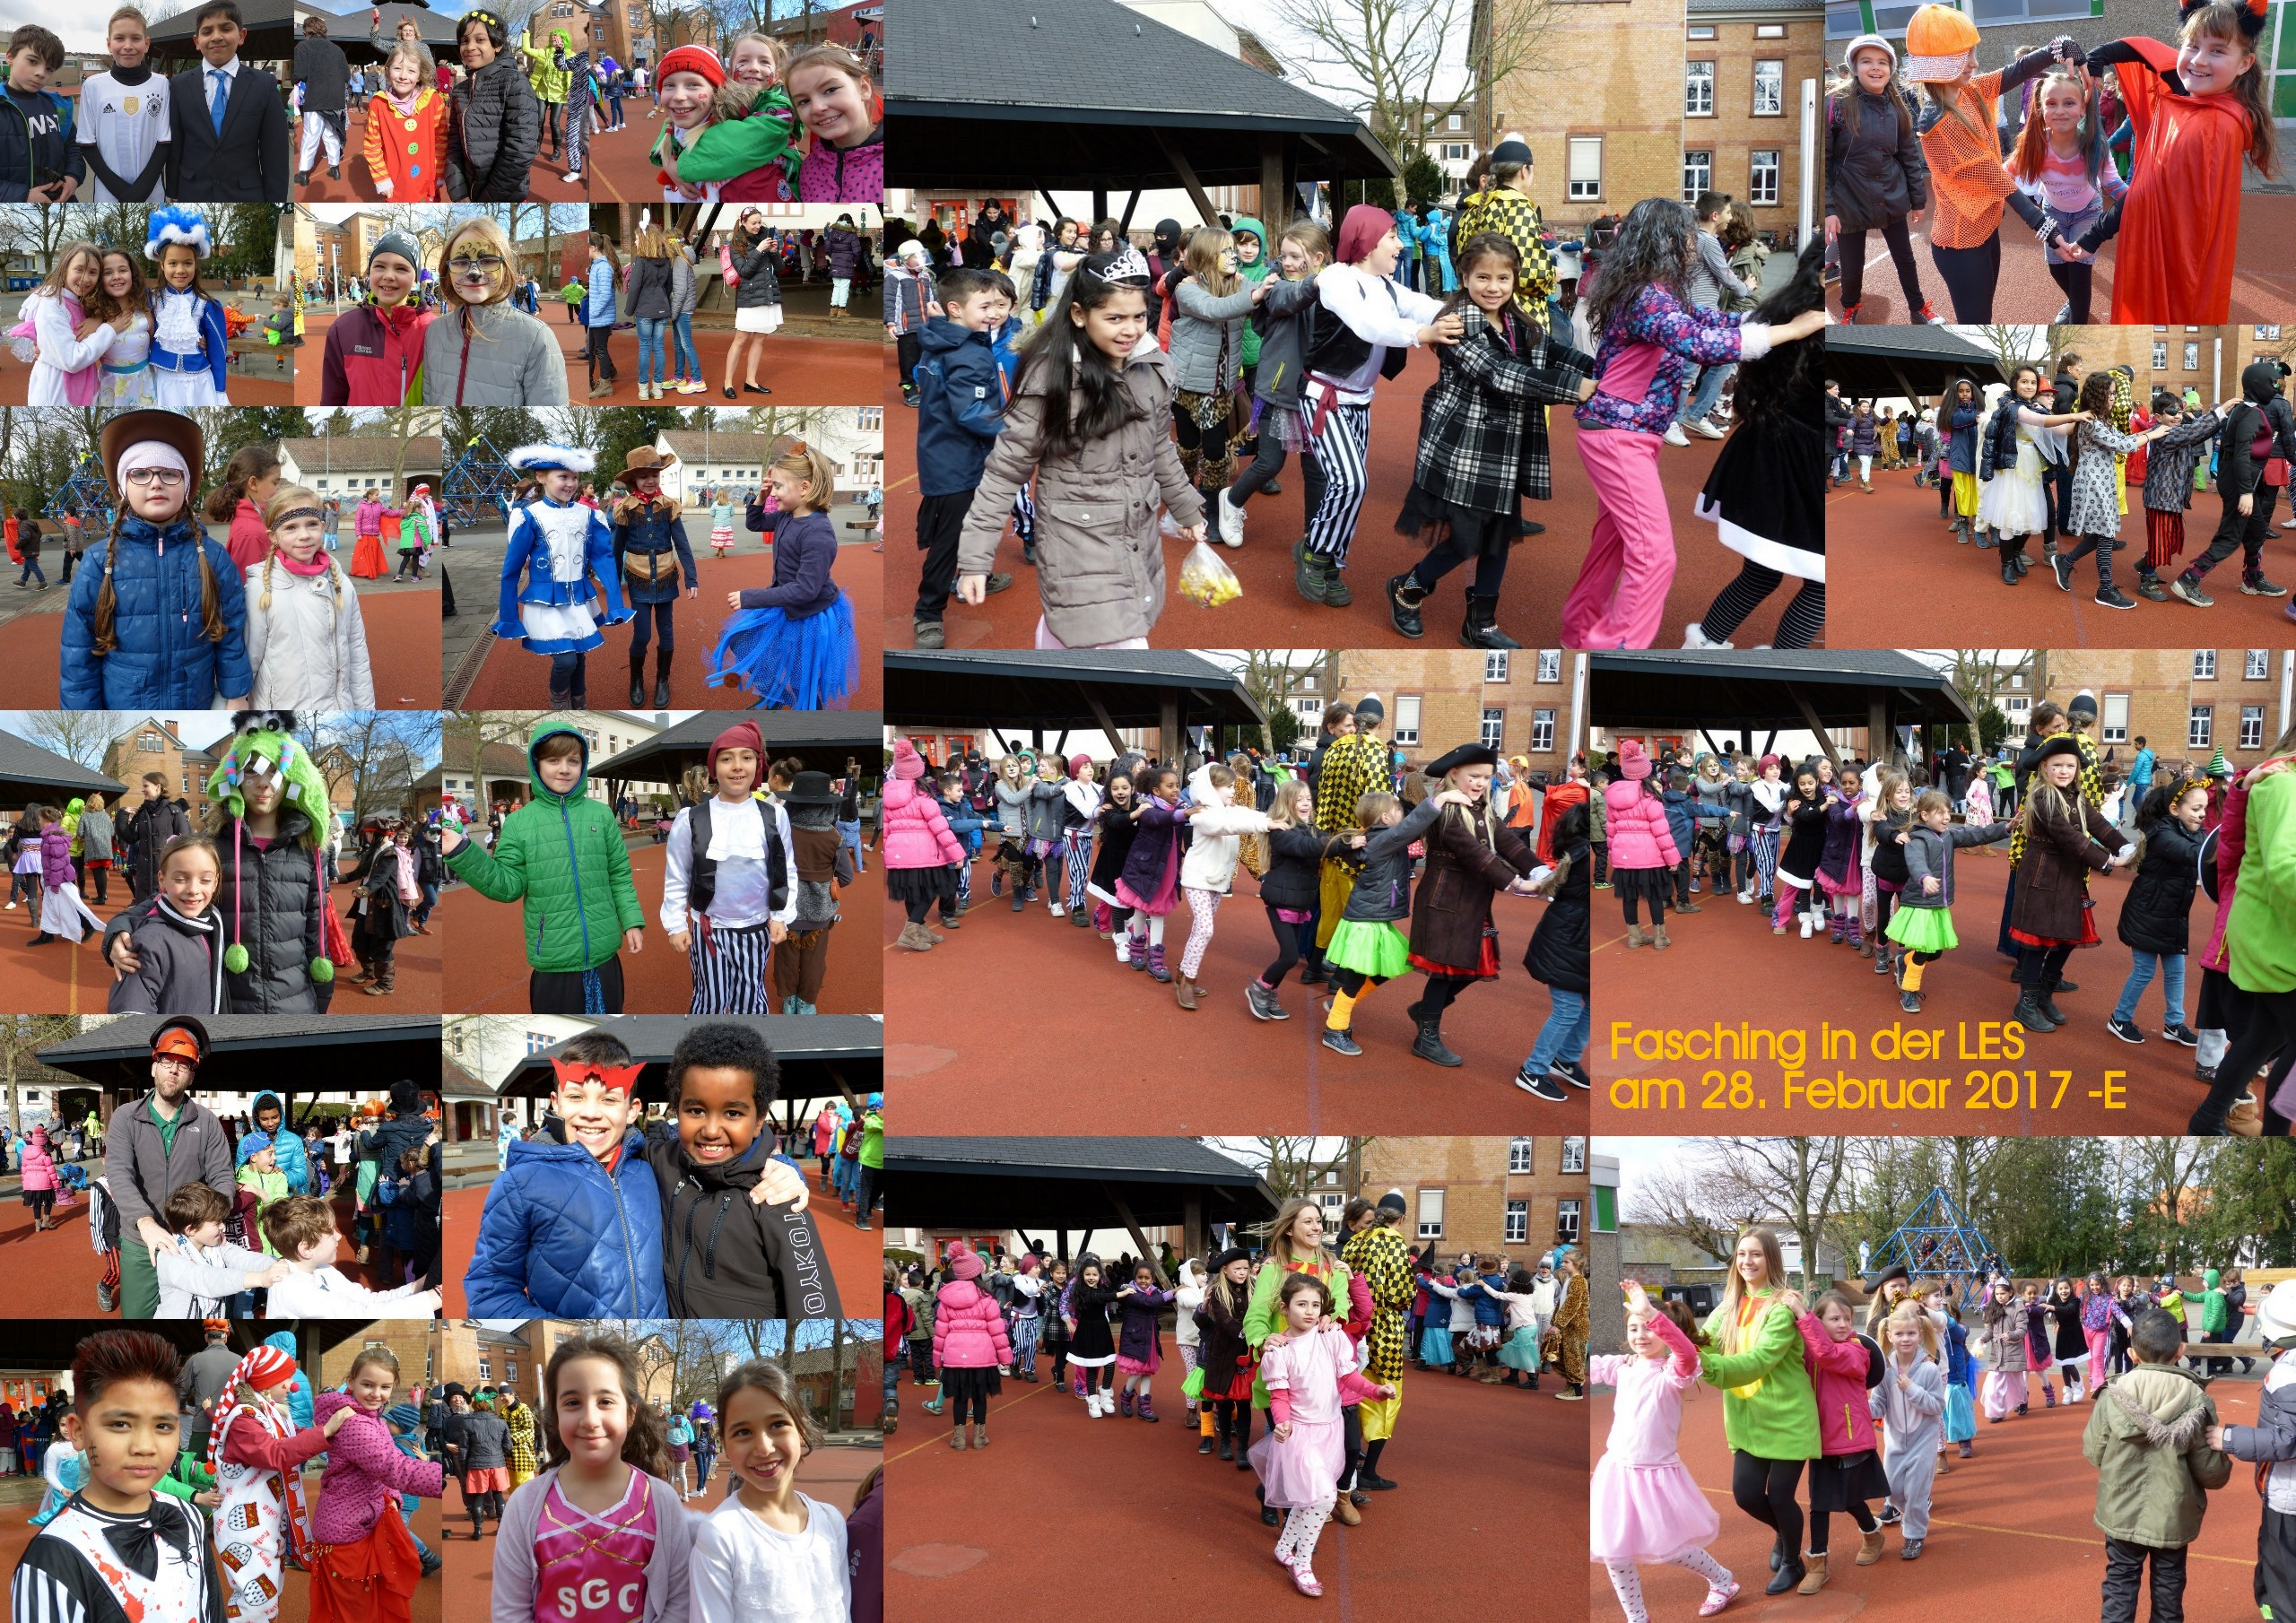 Fasching 2017 - Collage E